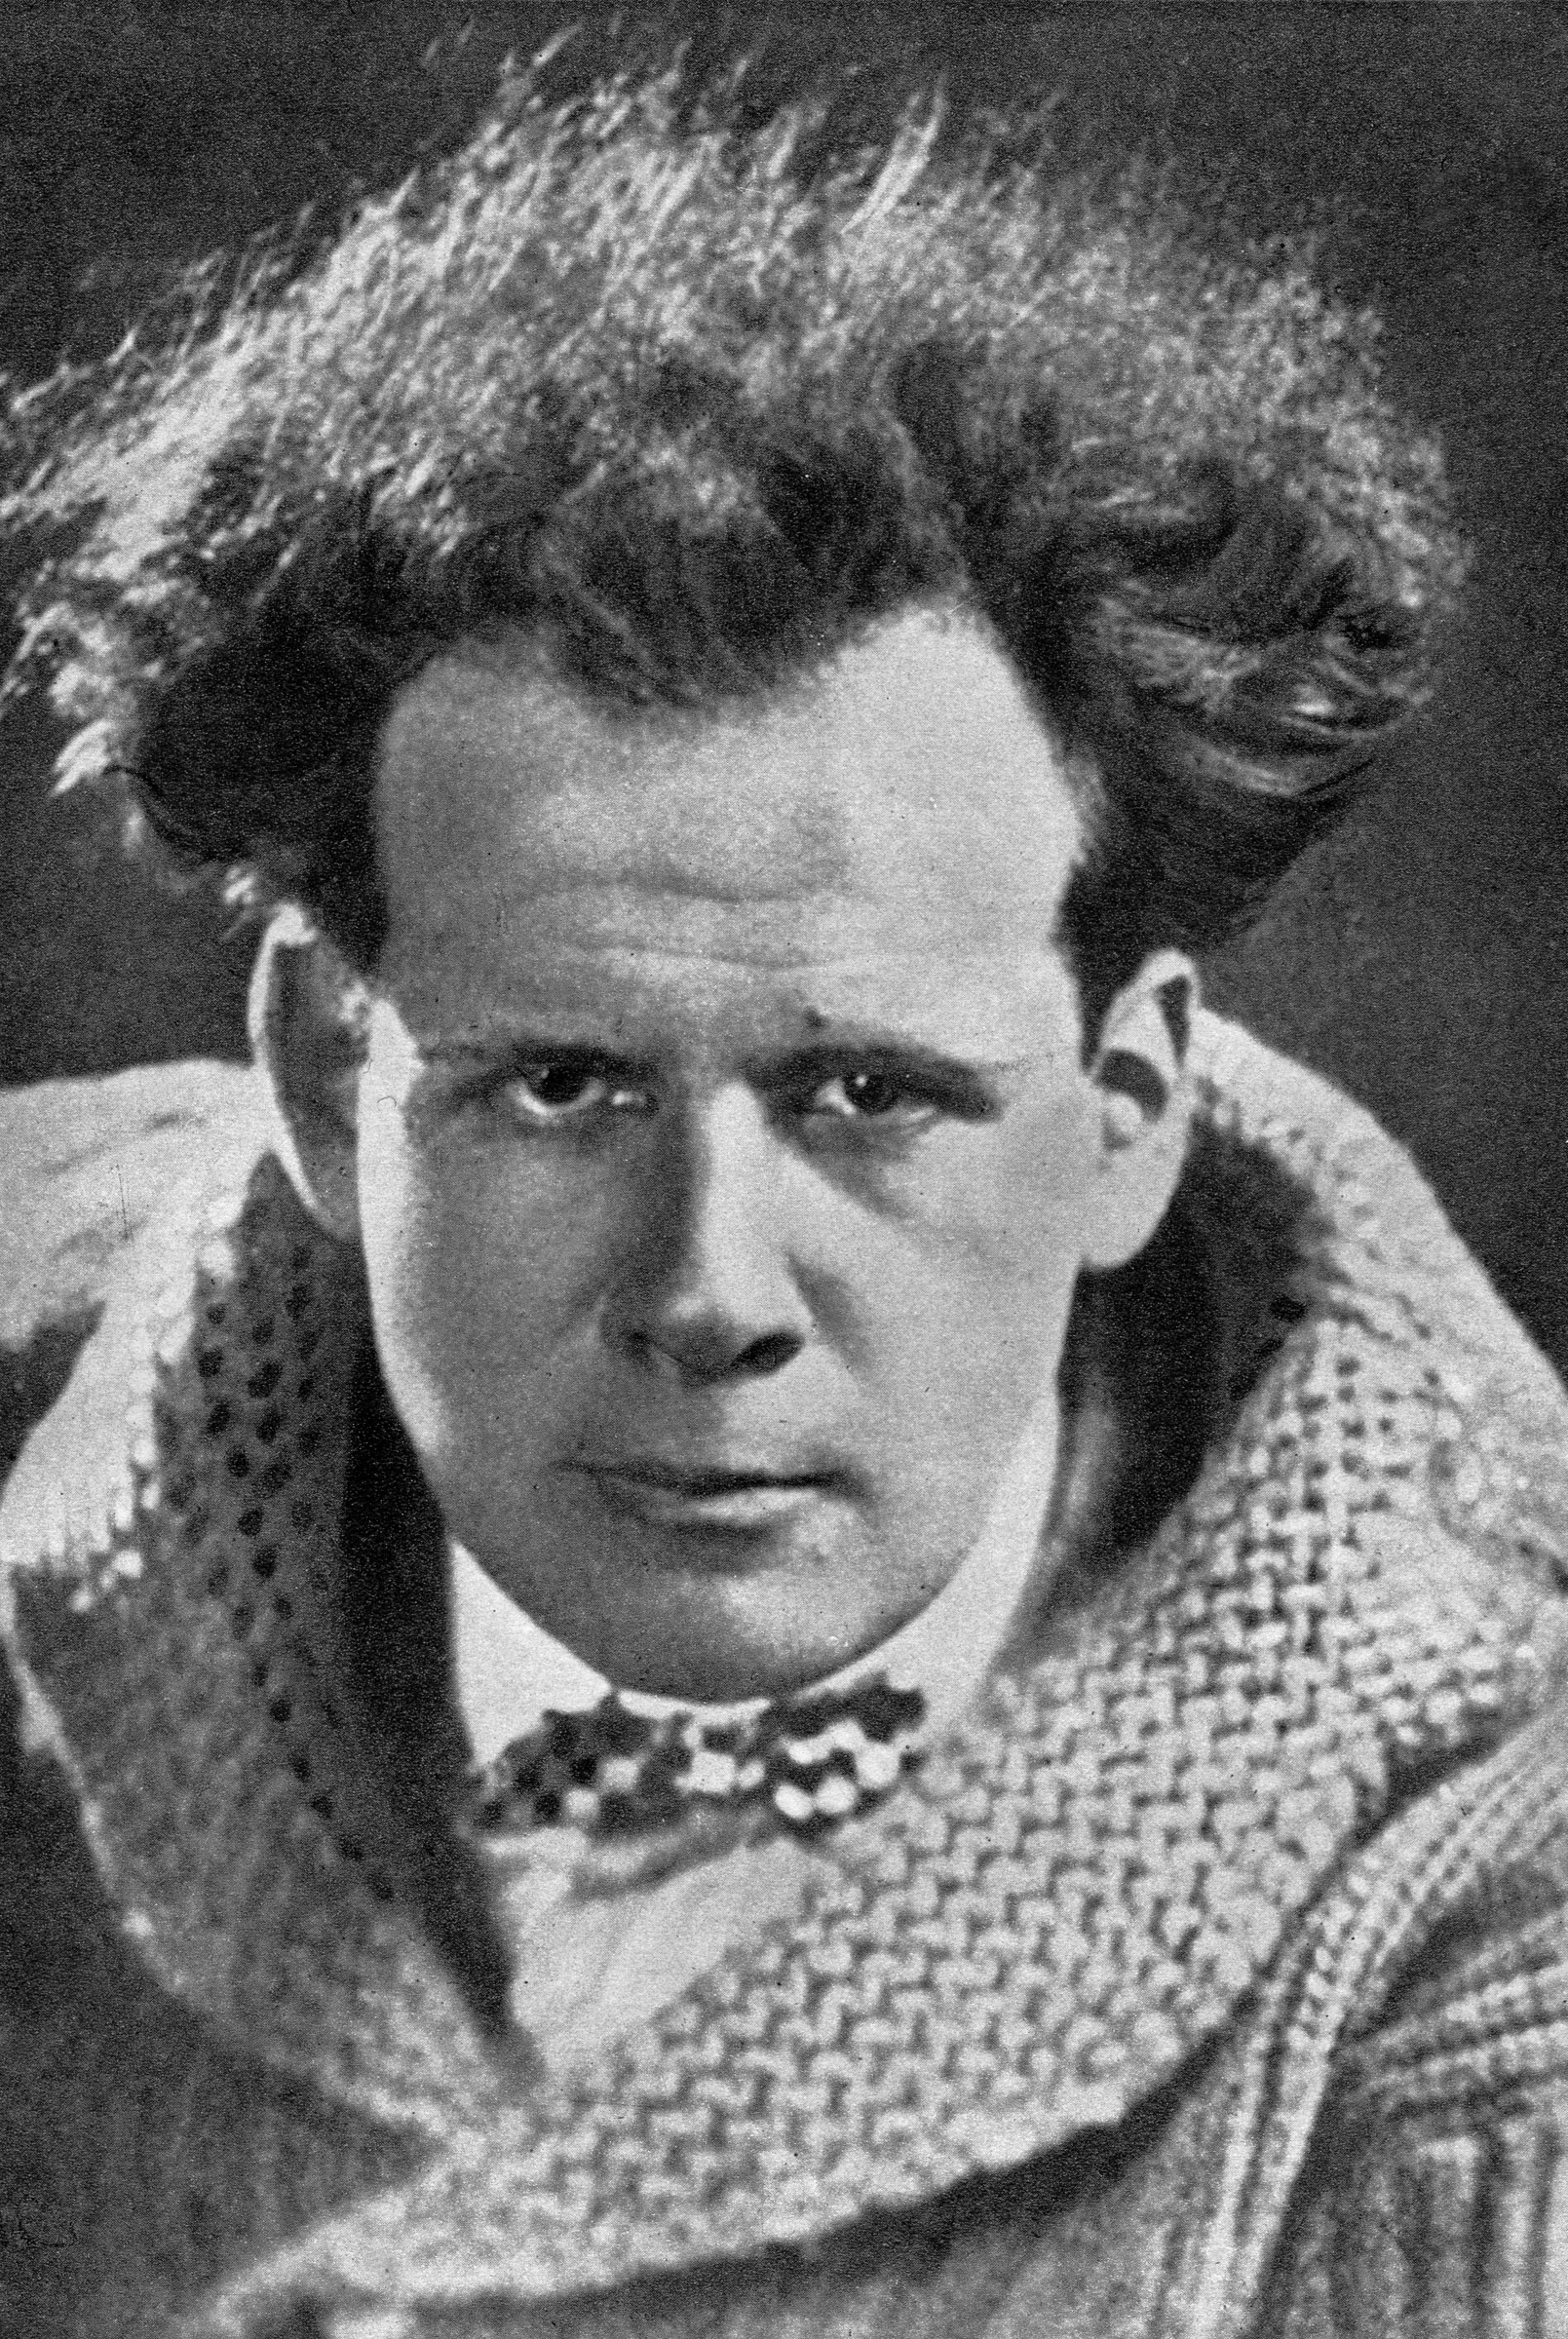 sergei eisenstein - photo #1